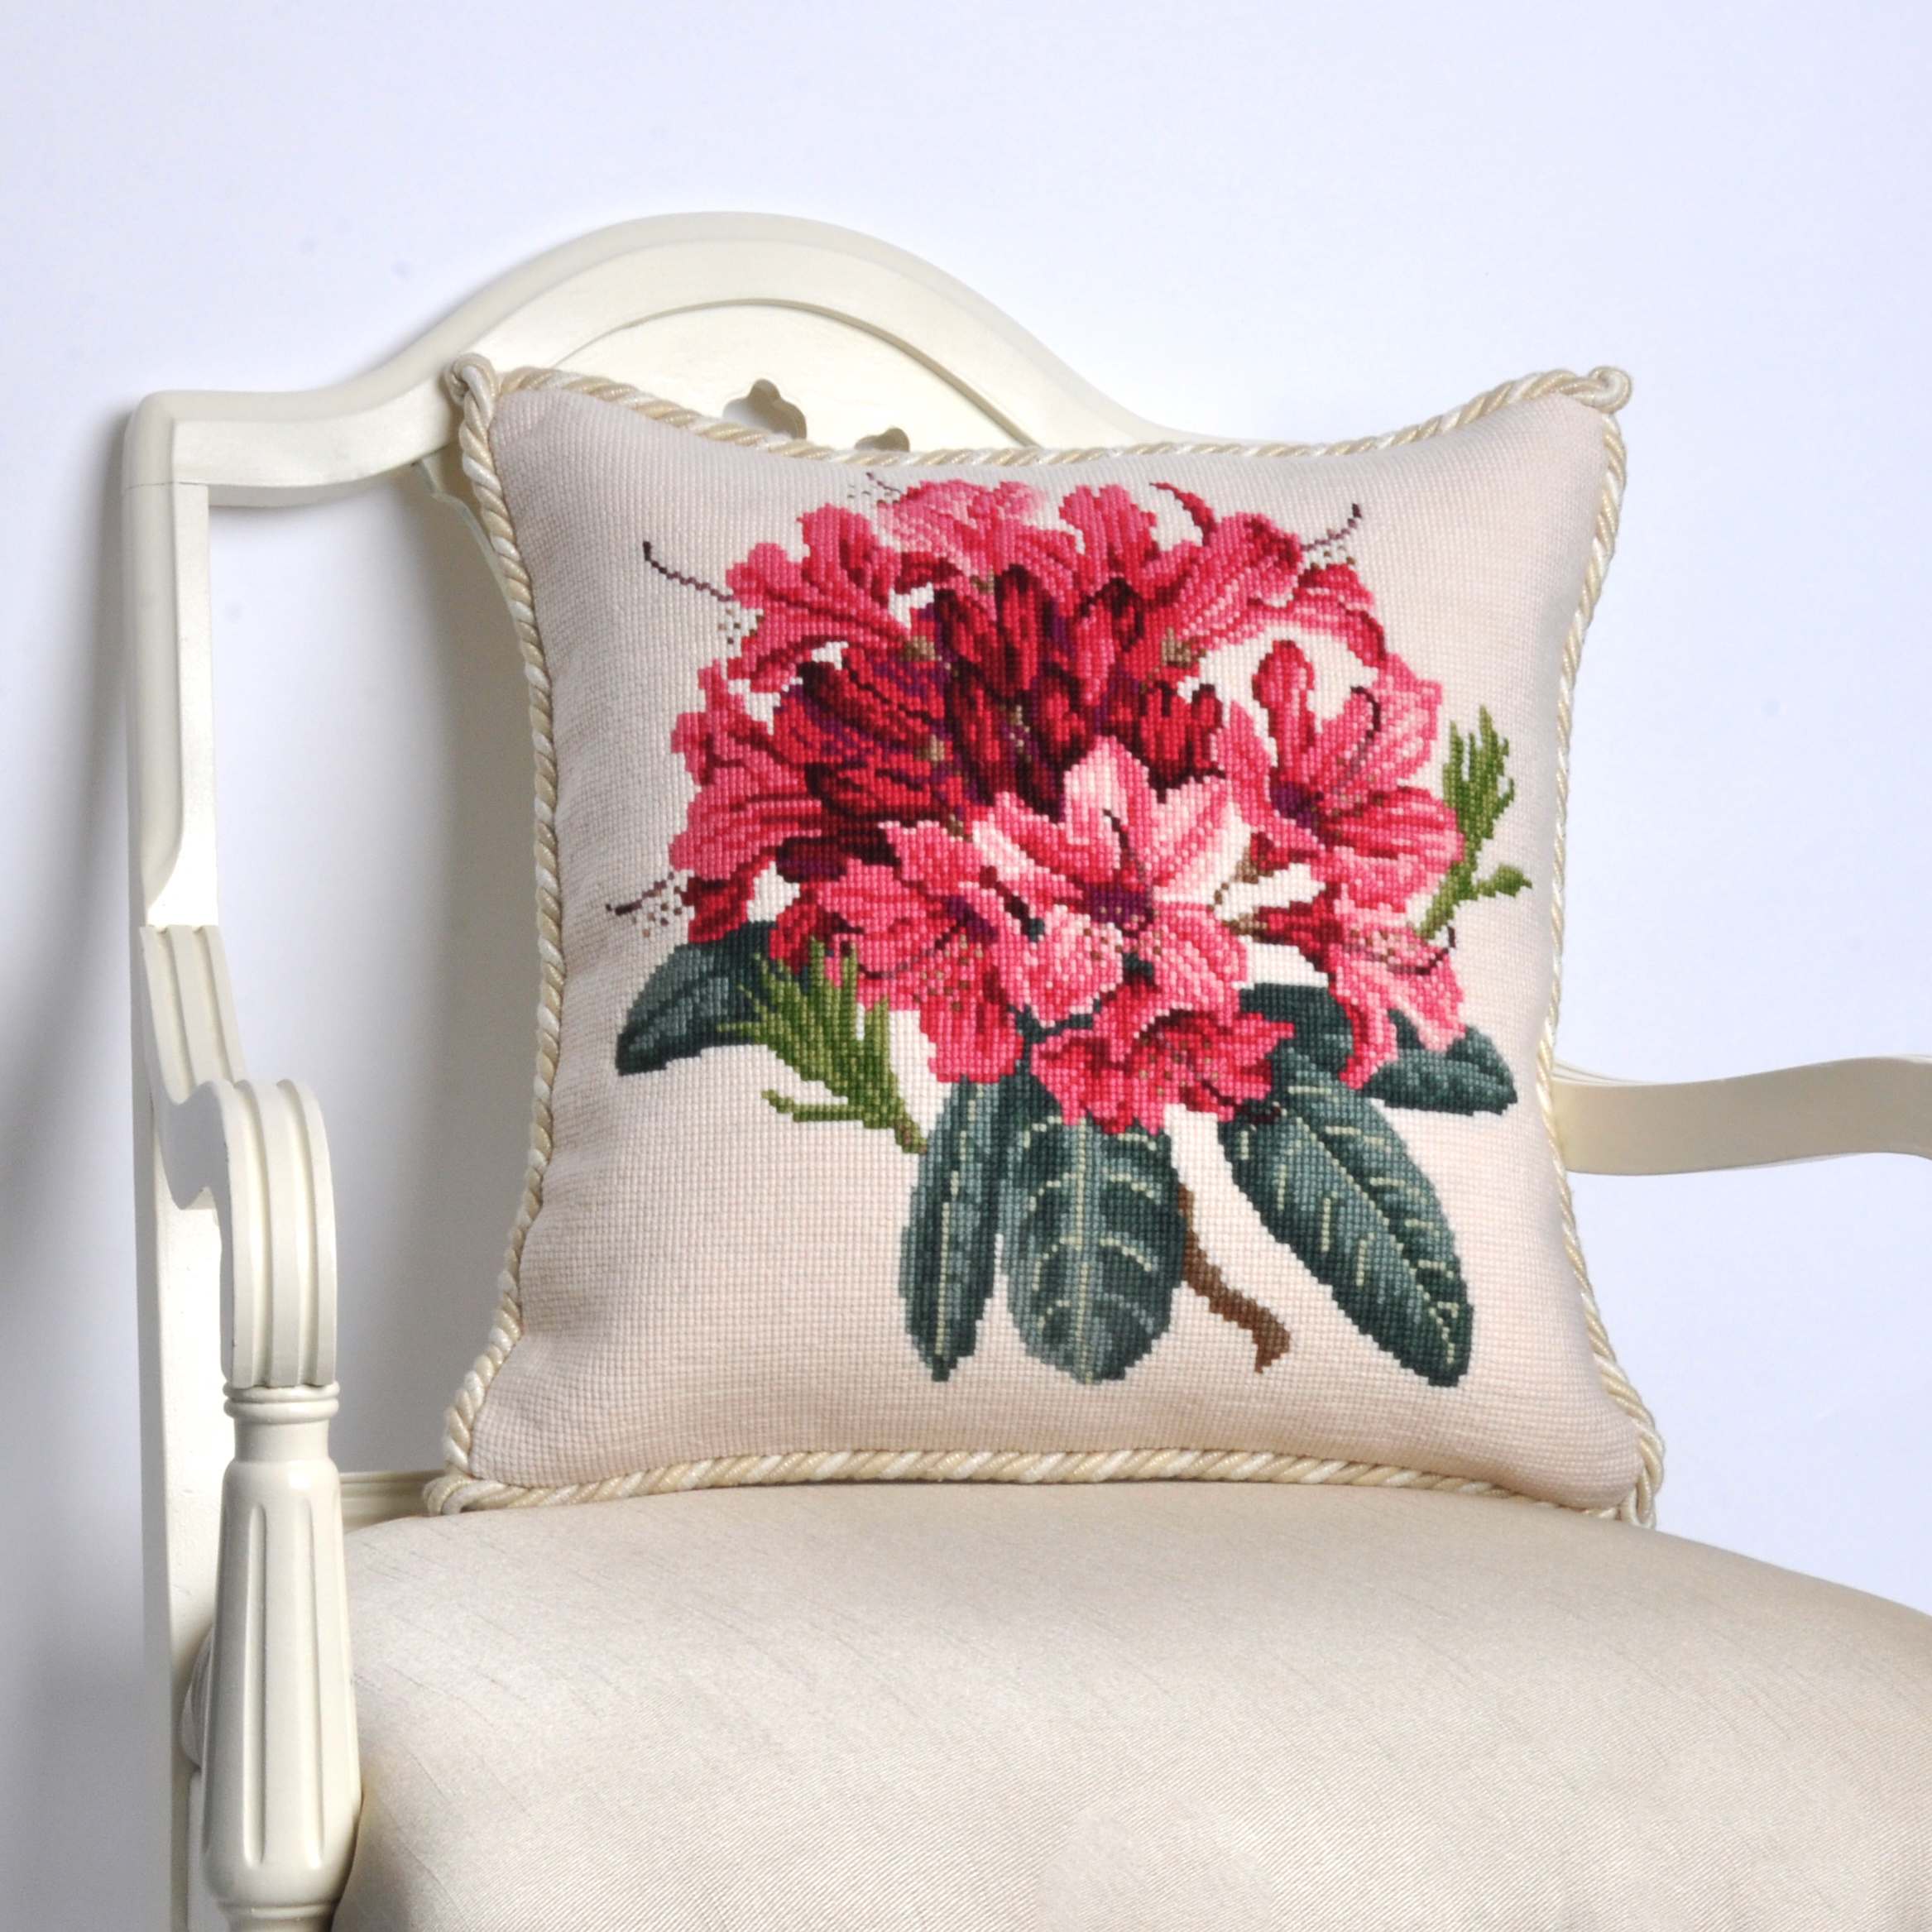 Queensgate Rhododendron needlepoint tapestry pillow                                    - hand-stitched, museum quality accessories for unique interiors -